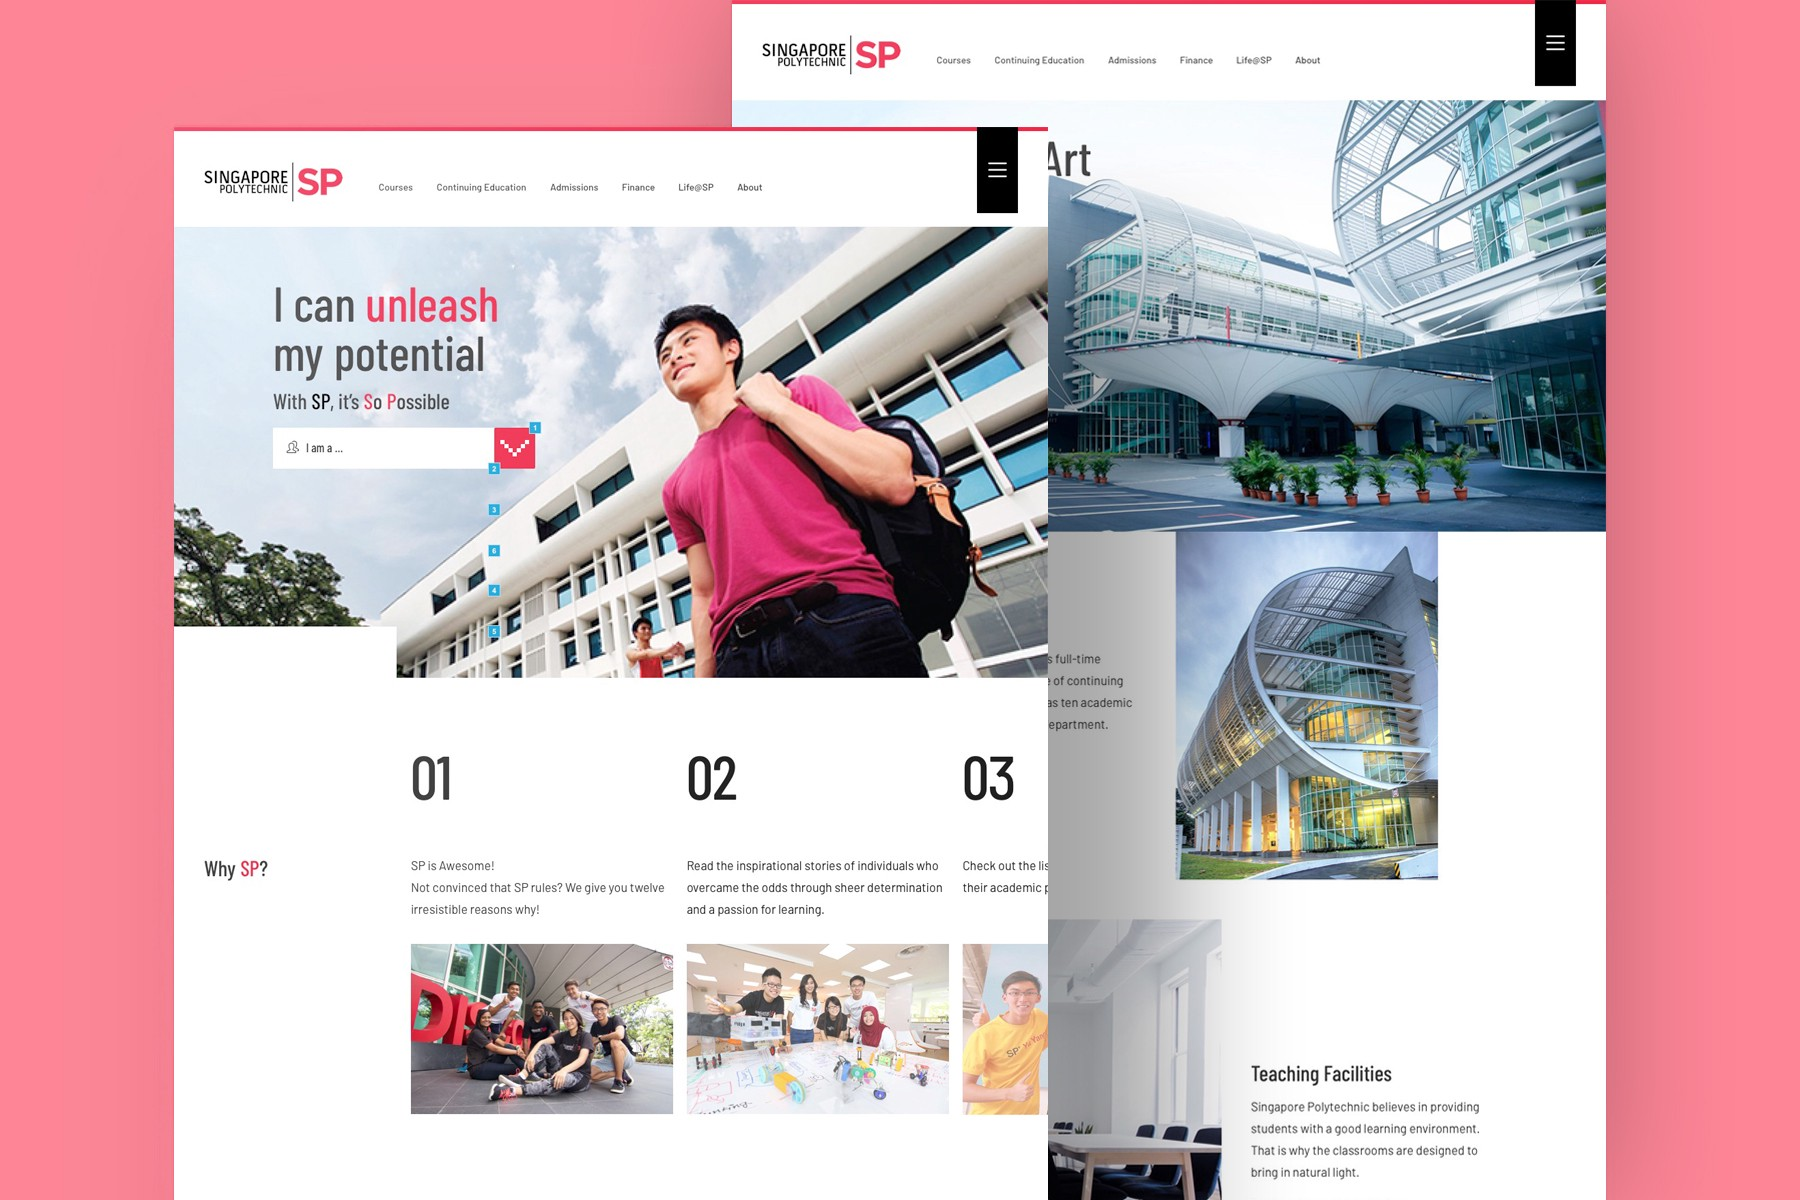 Ux Case Study Singapore Polytechnic Website Information Architecture By Leow Hou Teng Medium